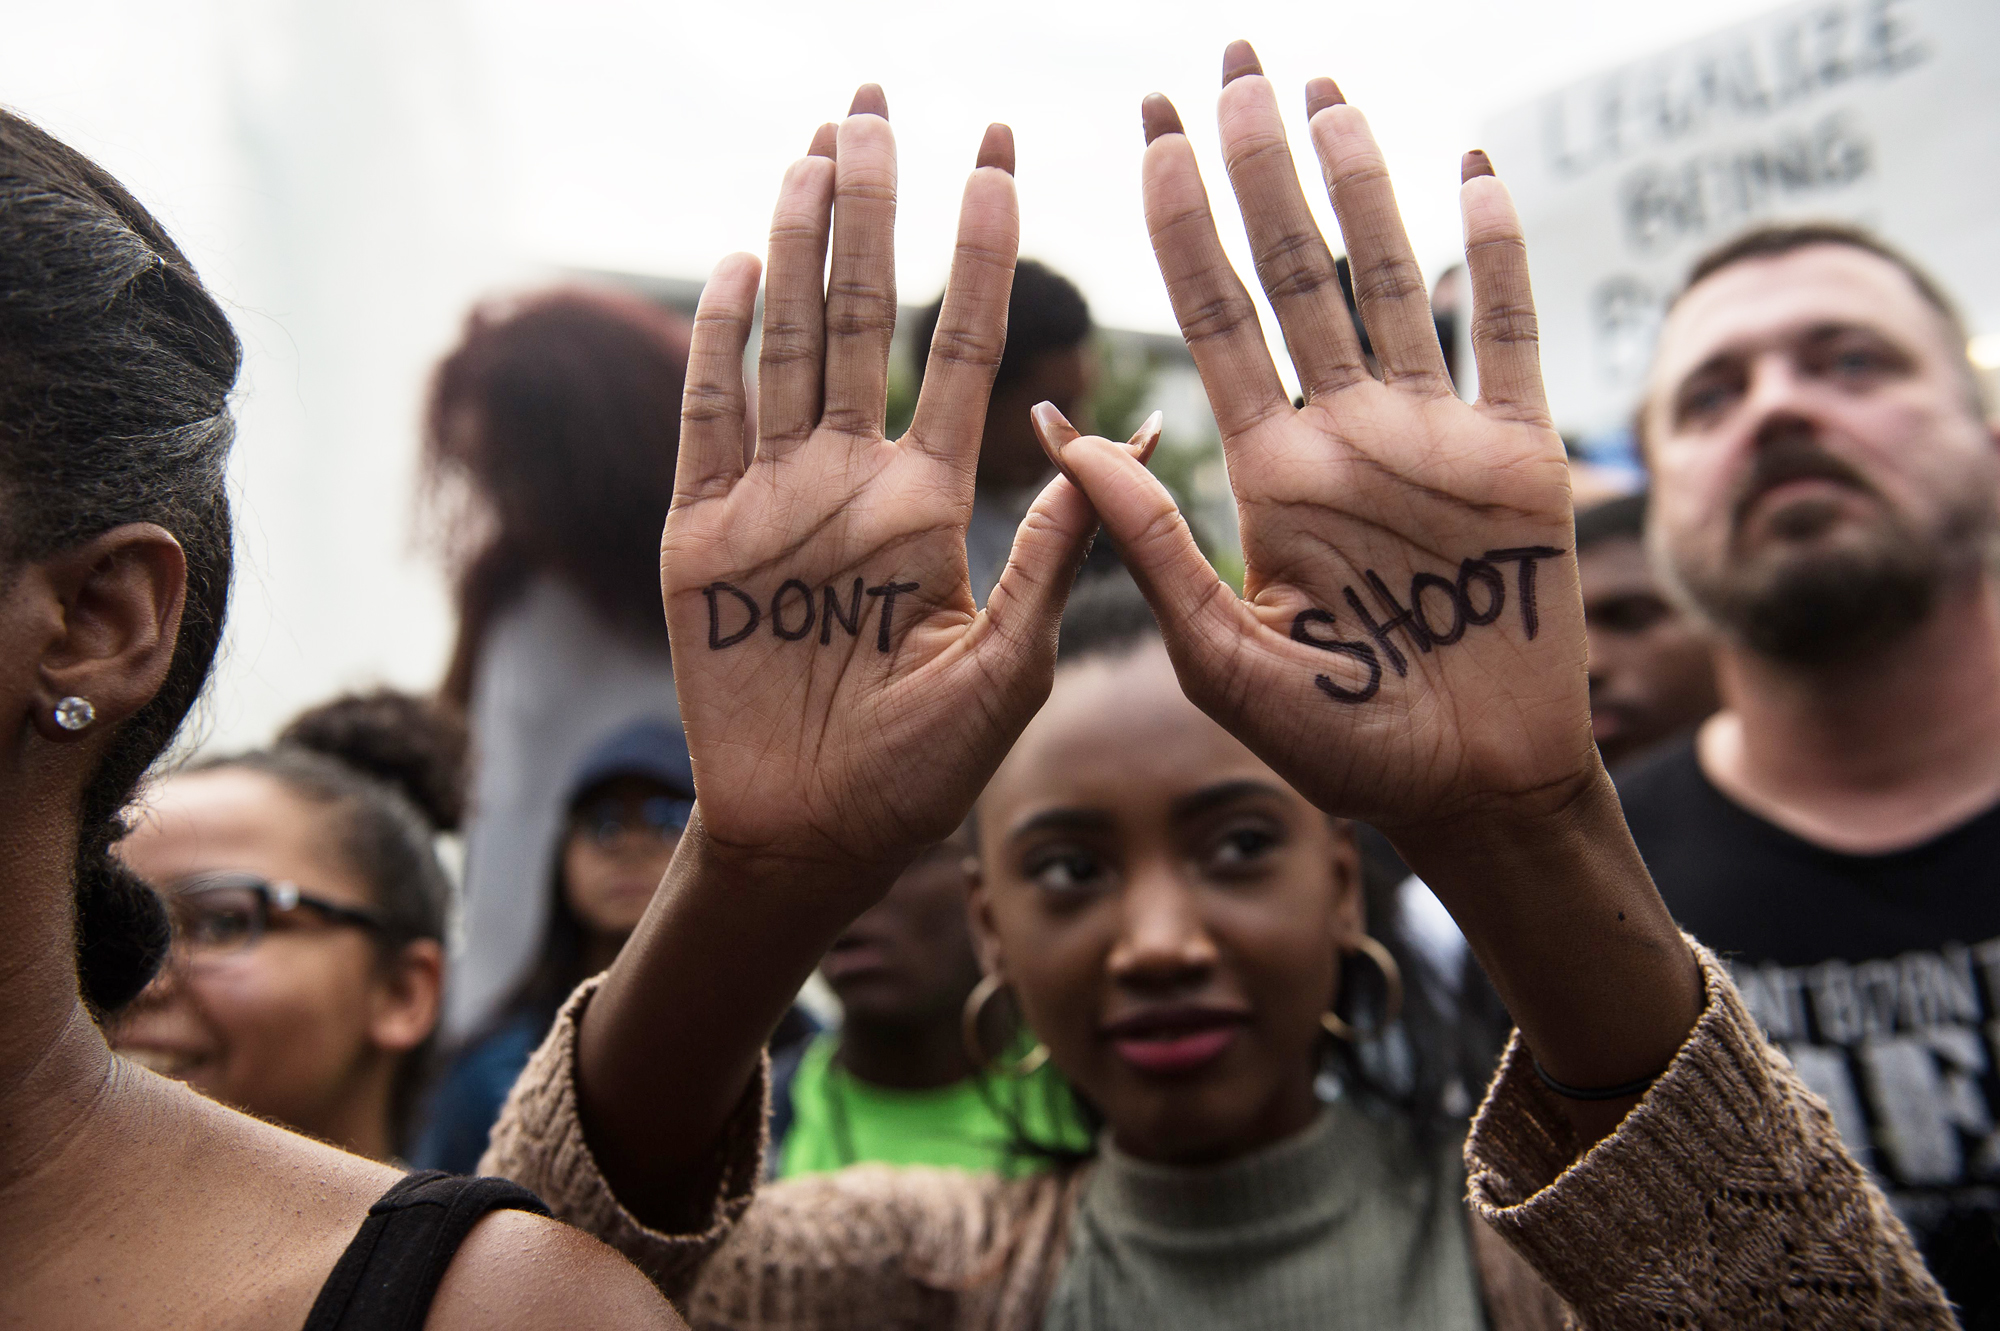 A protester holds up her hands with a slogan written on them during a demonstration against police brutality in Charlotte, North Carolina, on September 21, 2016, following the shooting of Keith Lamont Scott the previous day.